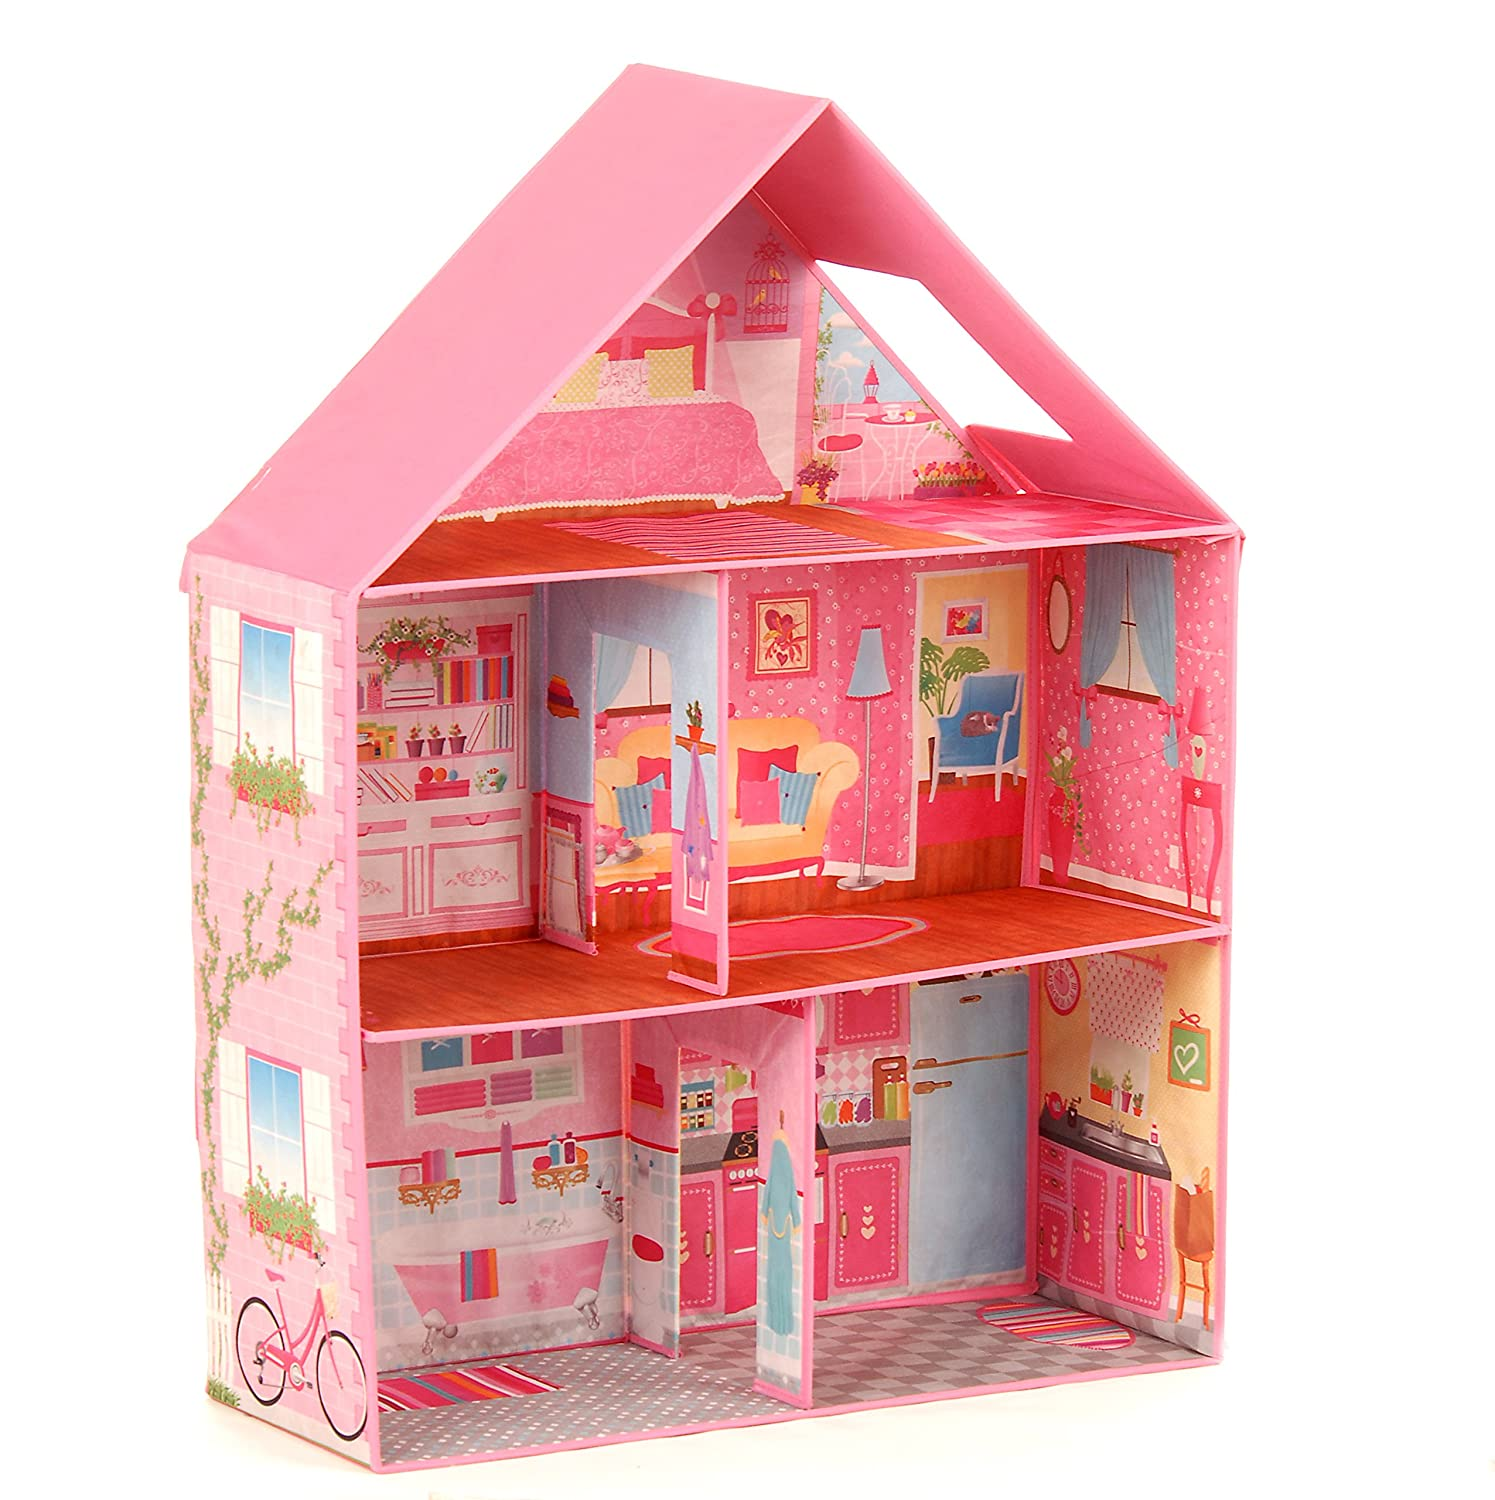 Toys For House : Calego classic doll house ebay